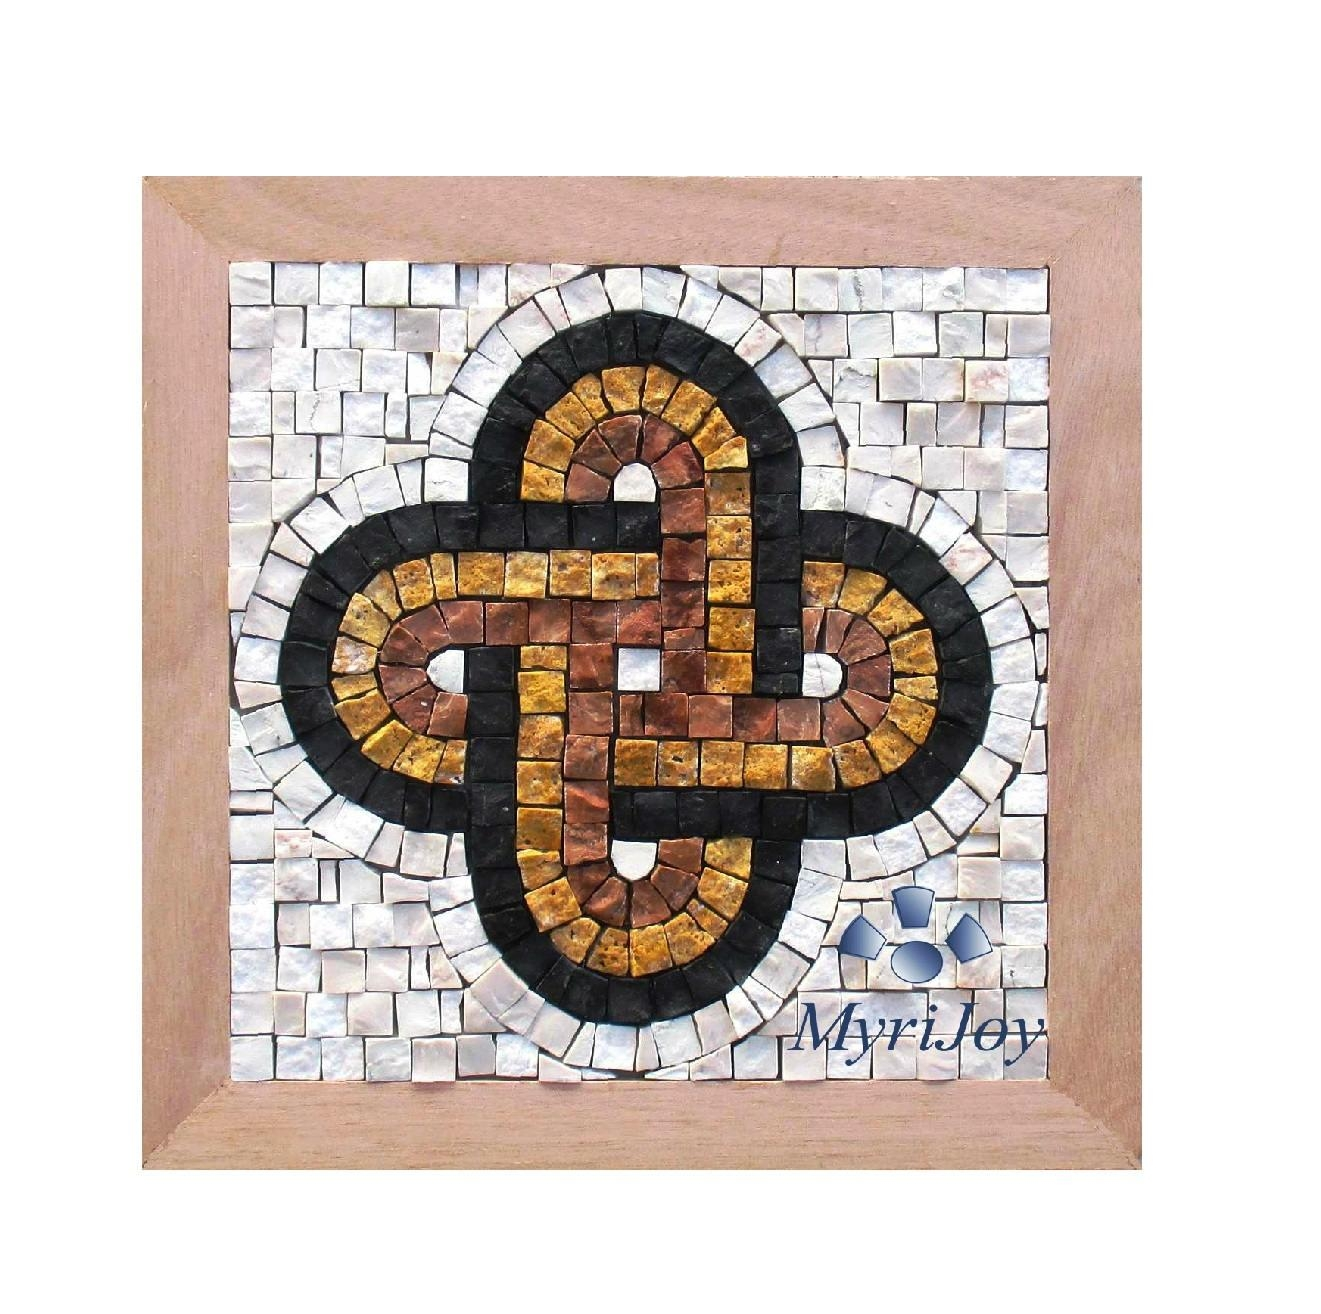 "Anniversary Diy Gift Mosaic Kit Solomon's Knot 9""x9"" Mosaic Wall Inside Mosaic Art Kits For Adults (Image 7 of 20)"